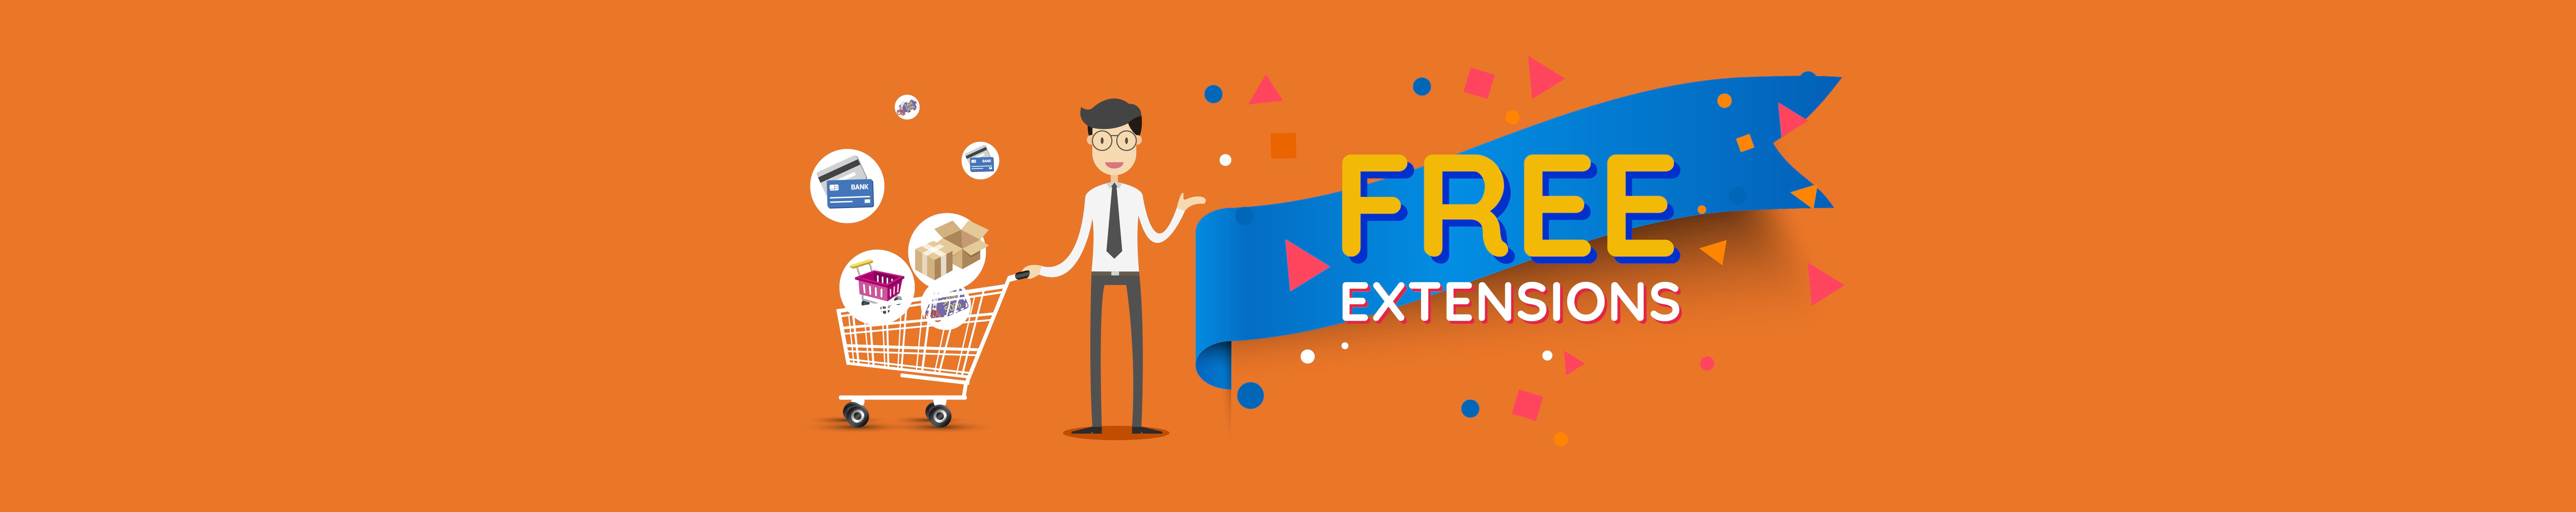 Free Extensions